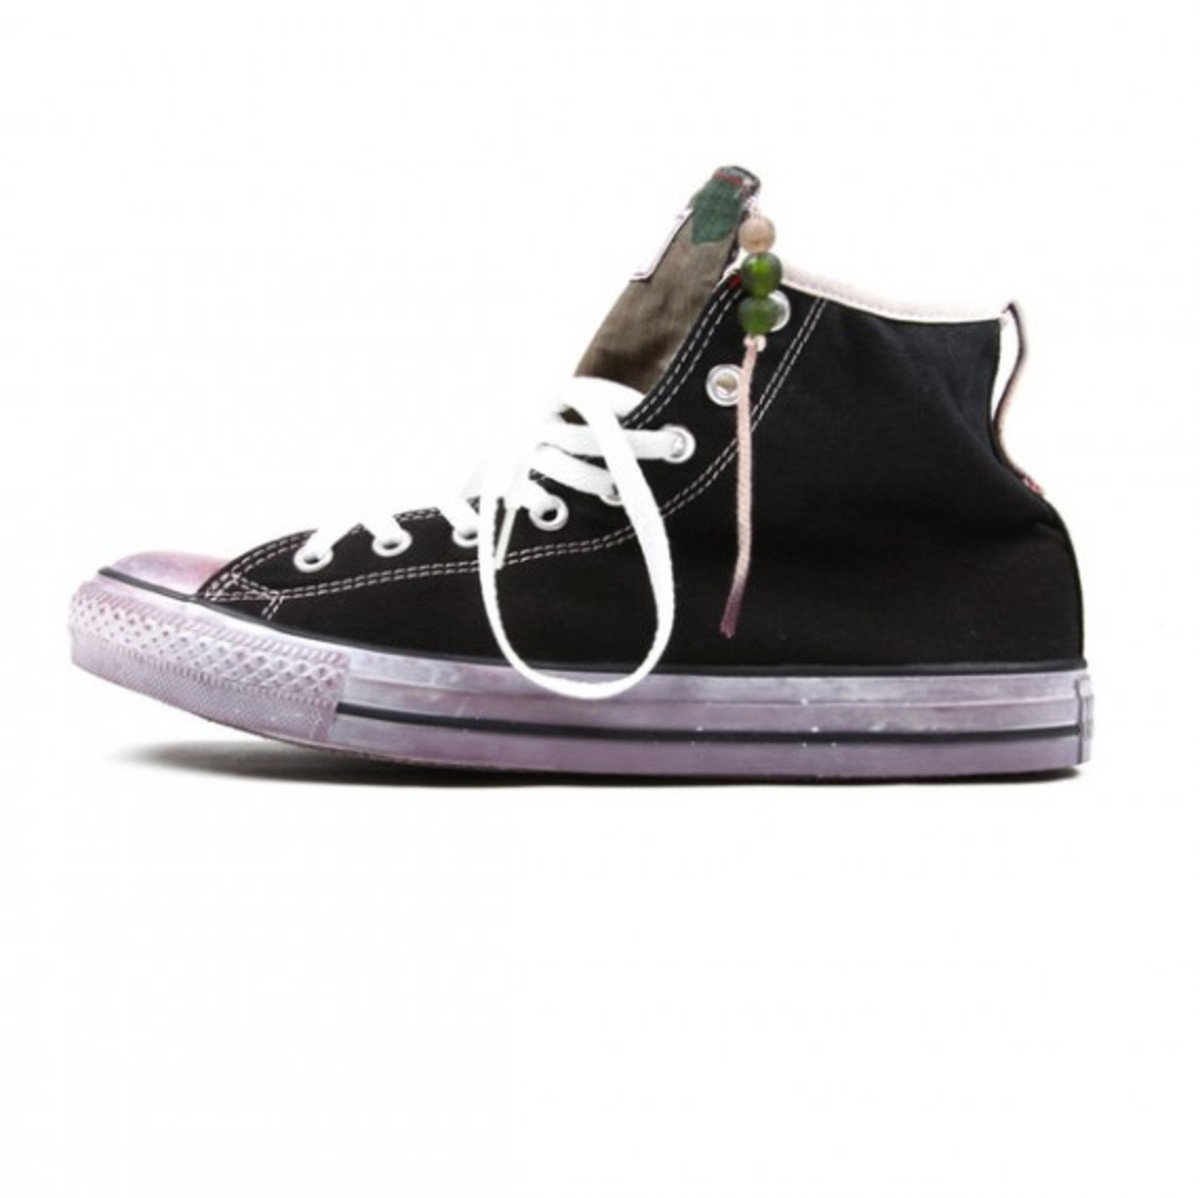 us-alteration-union-custom-made-converse-ct-sneakers-09